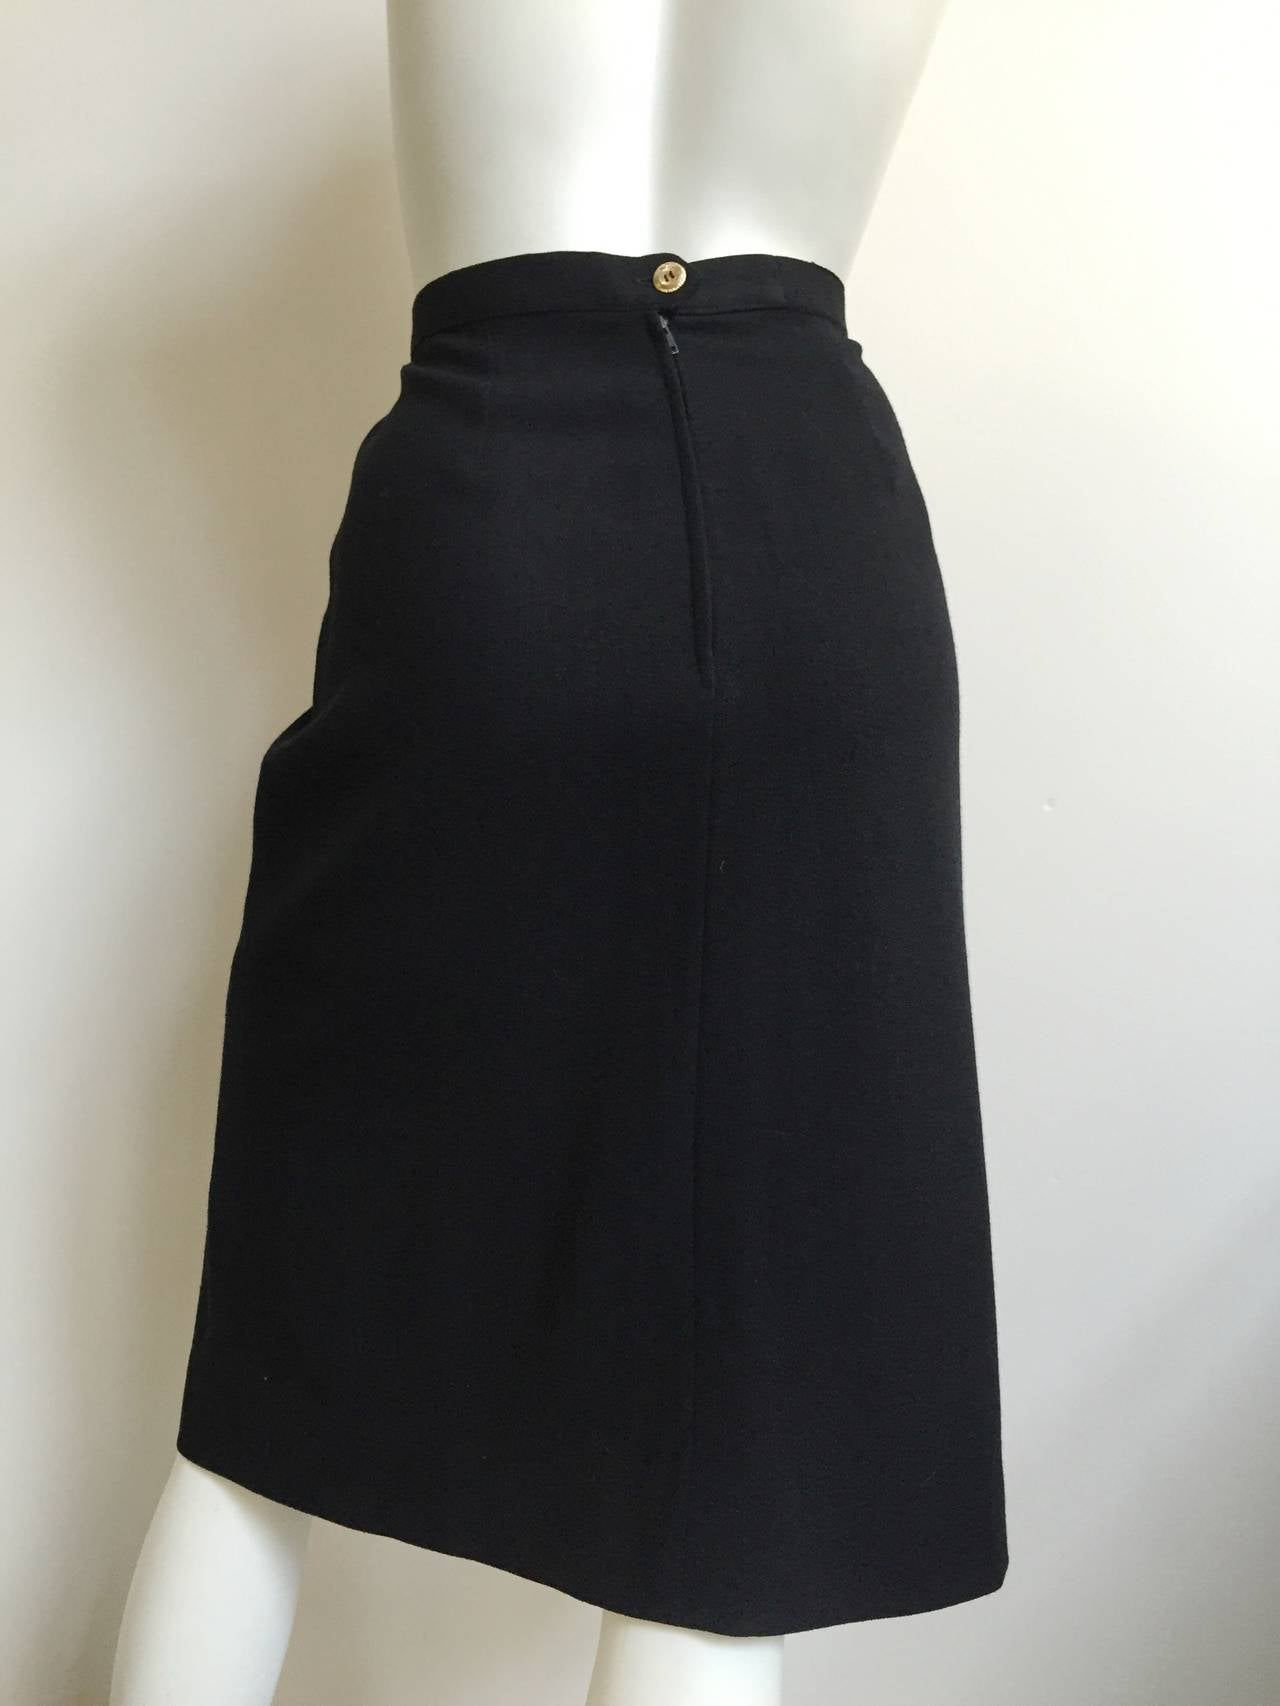 Chanel 80s Black Pleated Skirt Size 10. 5